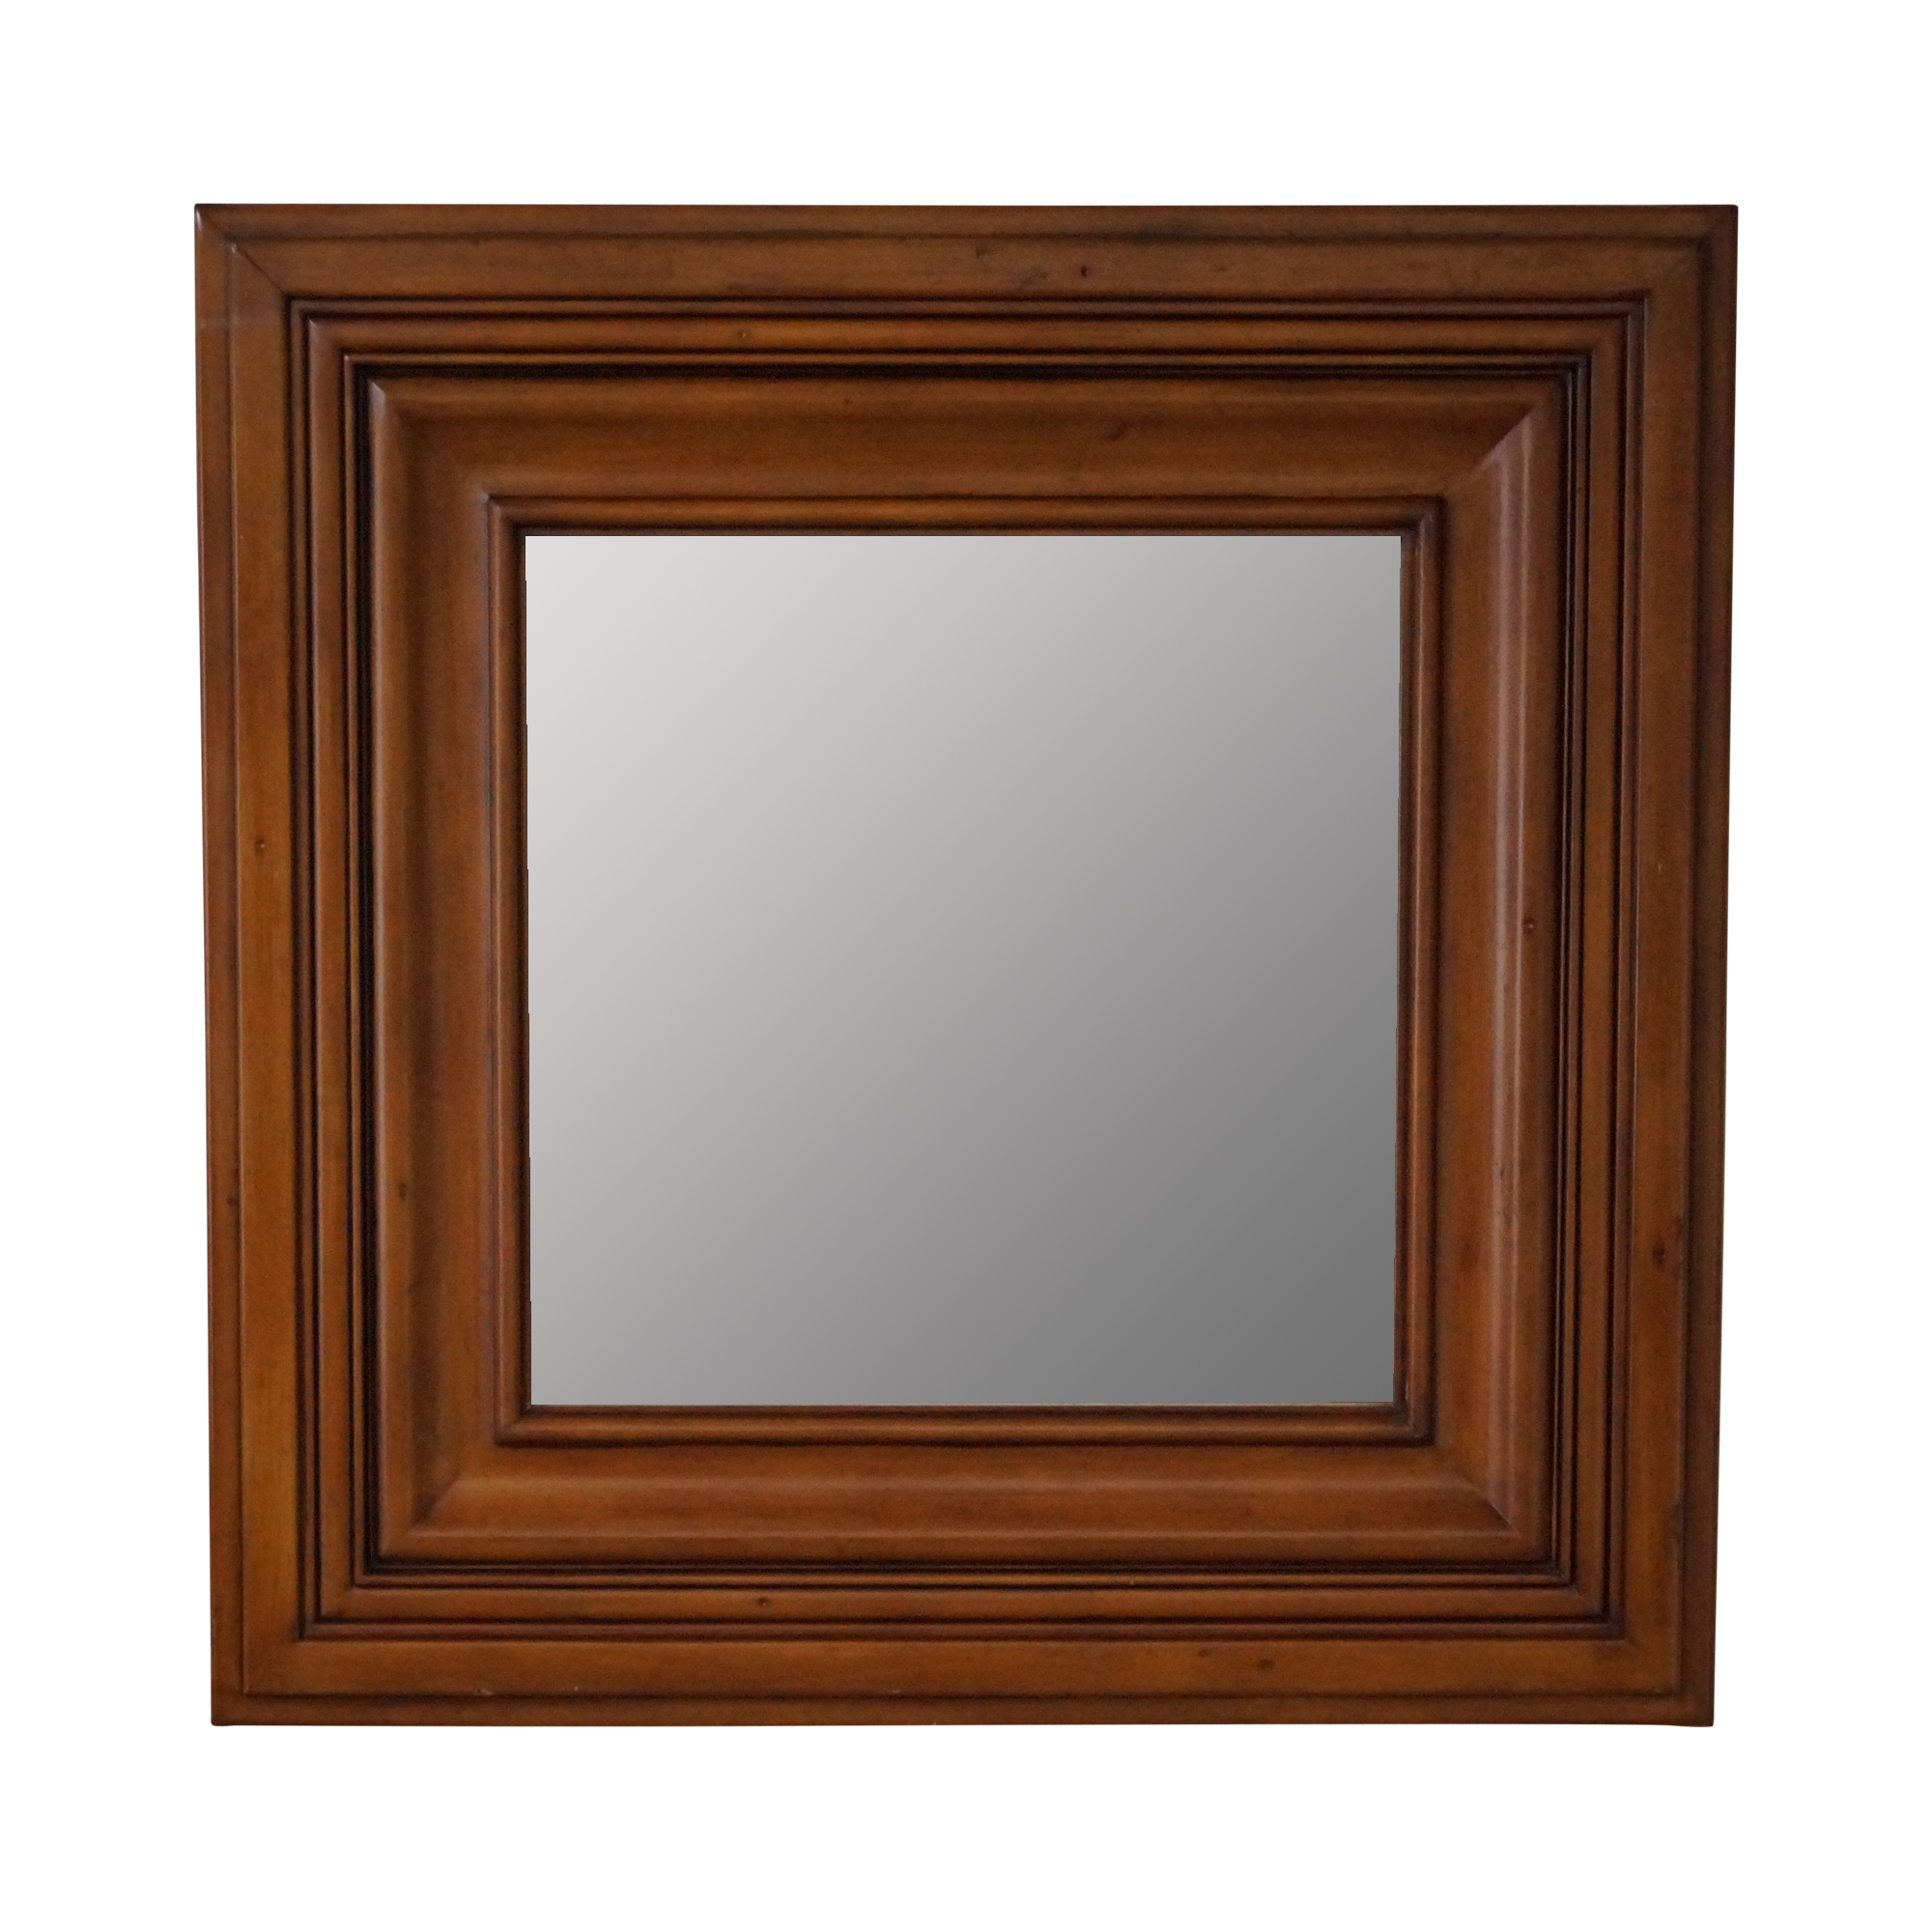 Square Wood Frame Beveled Wall Mirror | Chairish